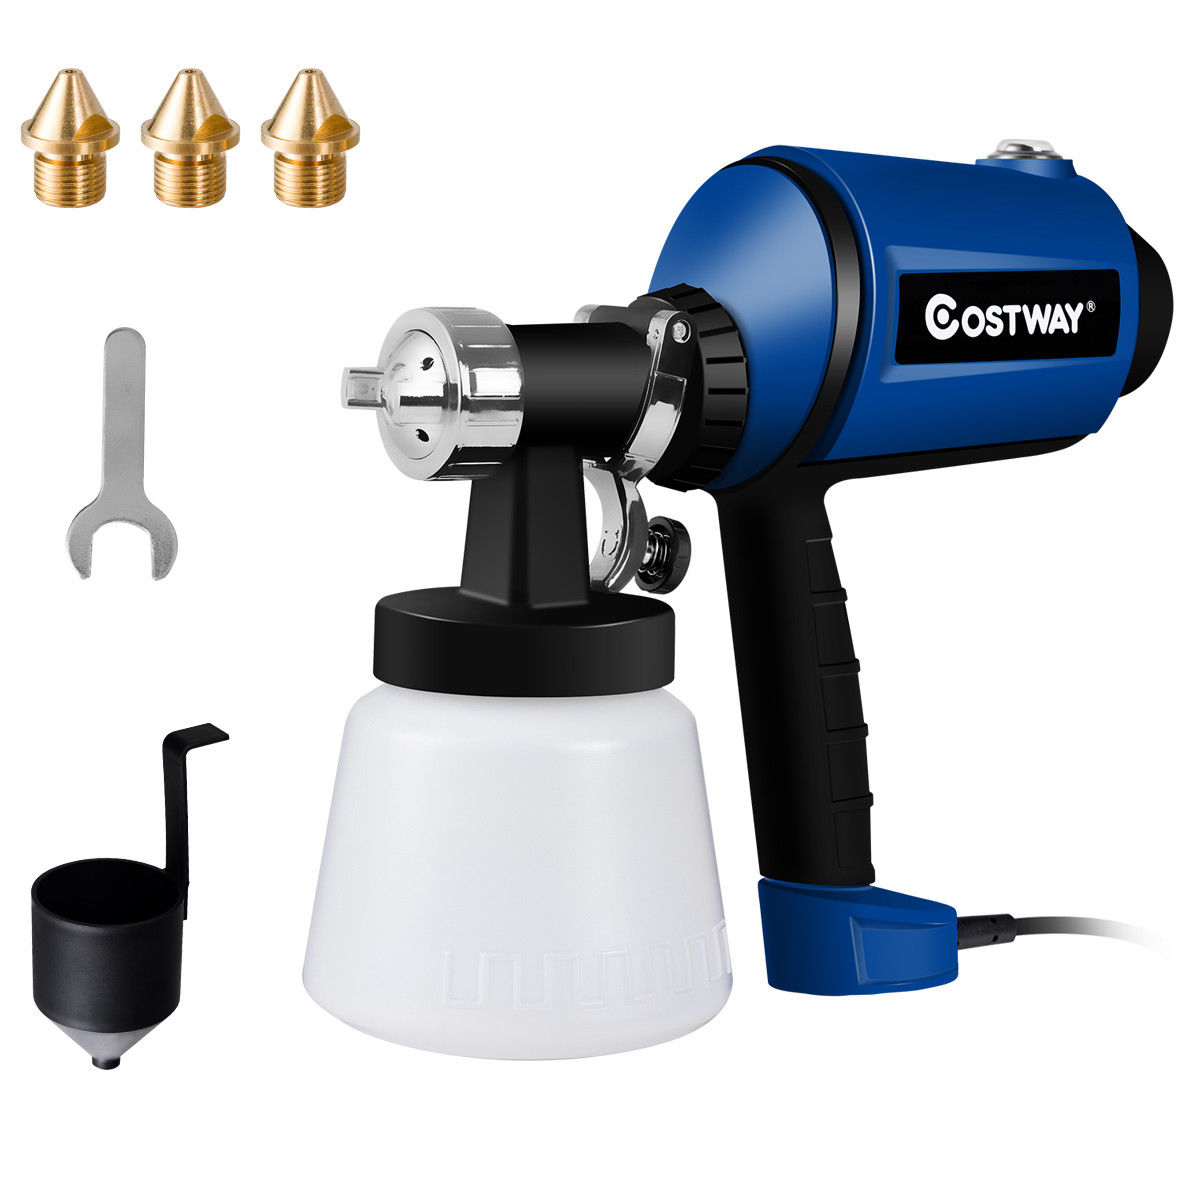 Costway 450W Electric HVLP Paint Sprayer Handheld 3-ways Spray Gun w/ 3 Copper Nozzles